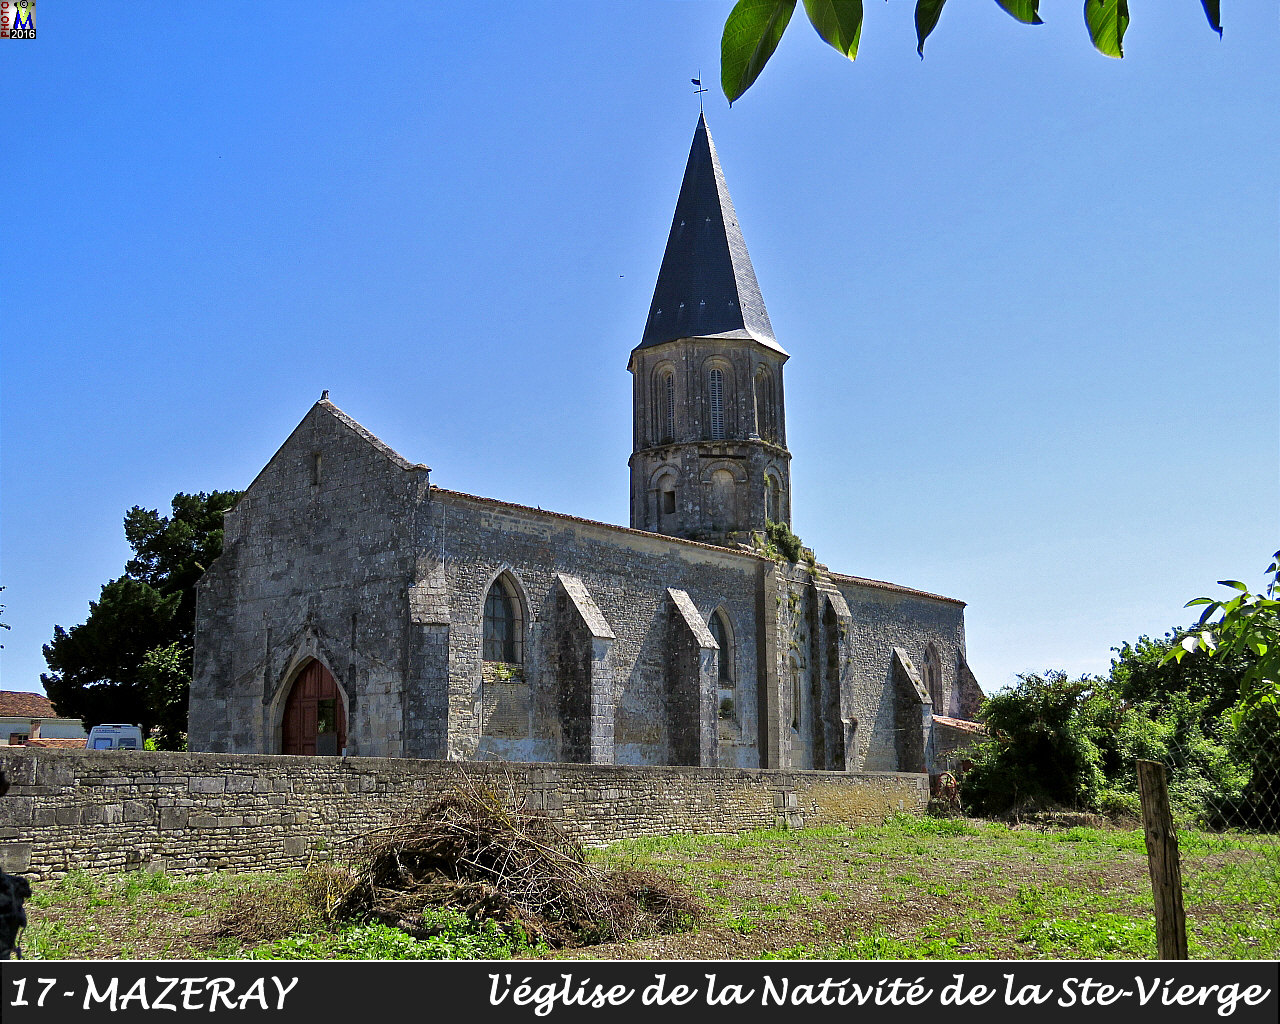 17MAZERAY_eglise_1002.jpg